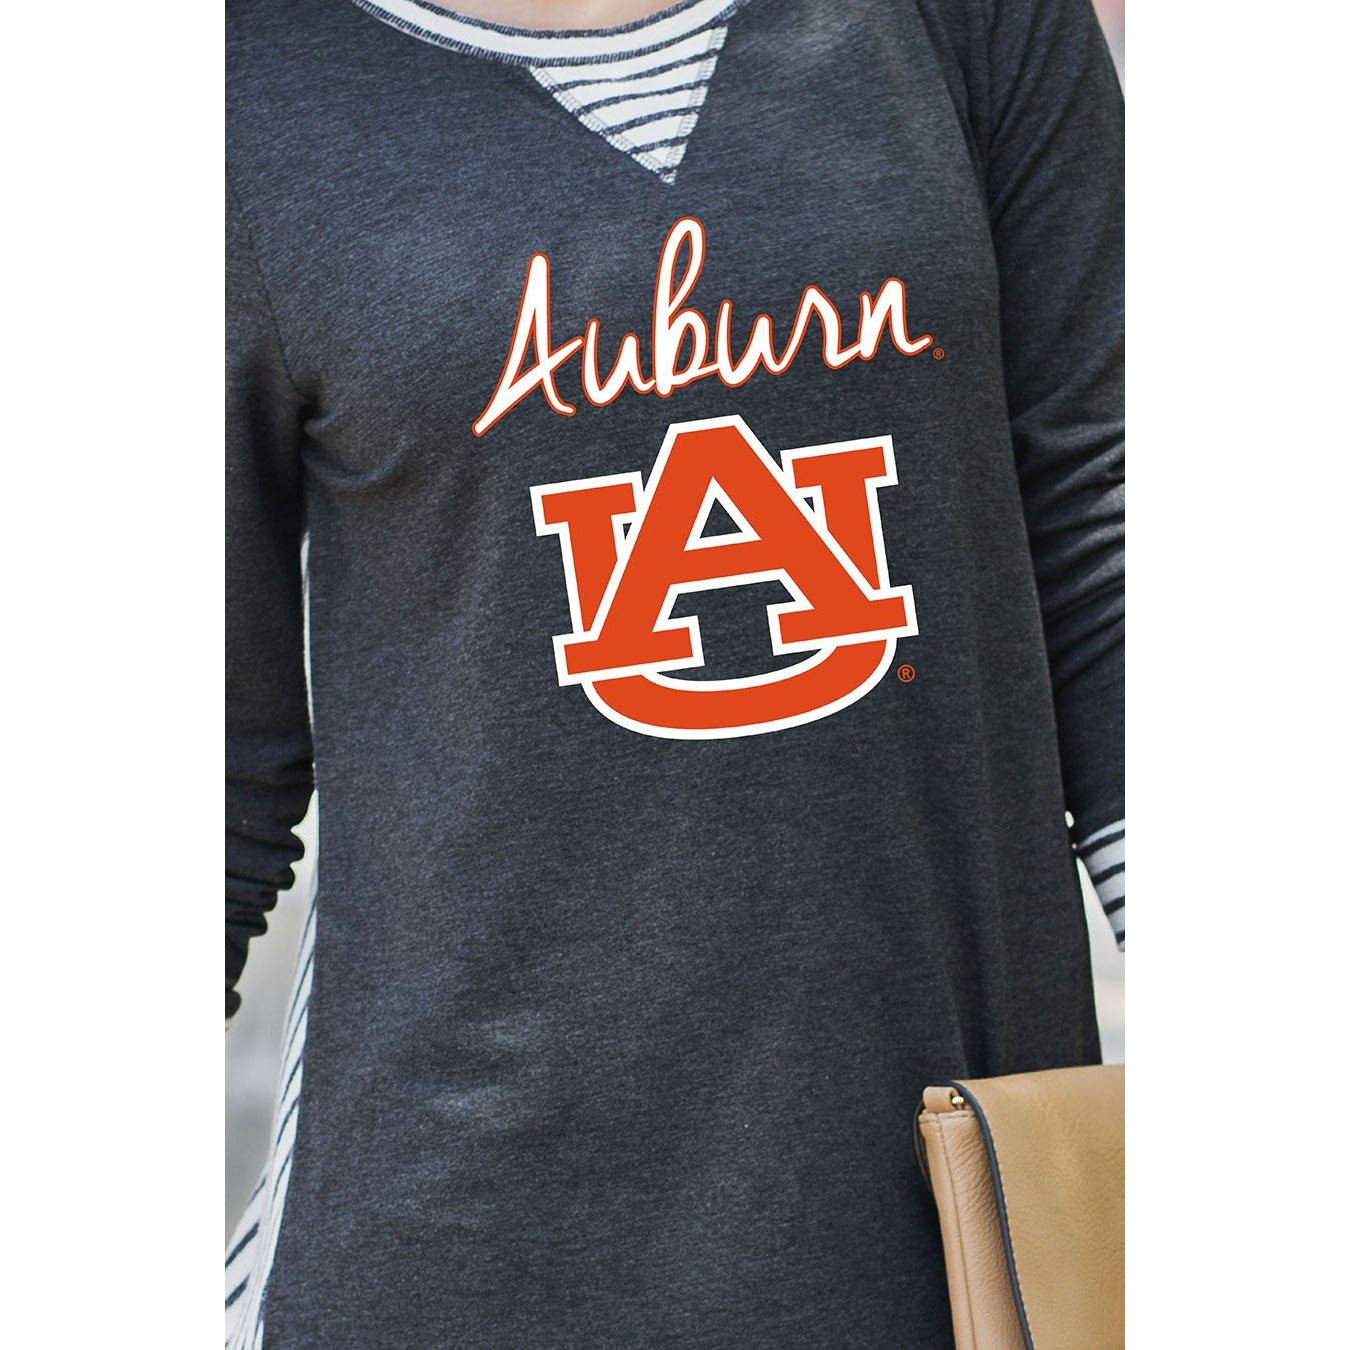 Gameday Couture You'll Be Back Striped Tunic - Auburn-Southern Ivy Boutique